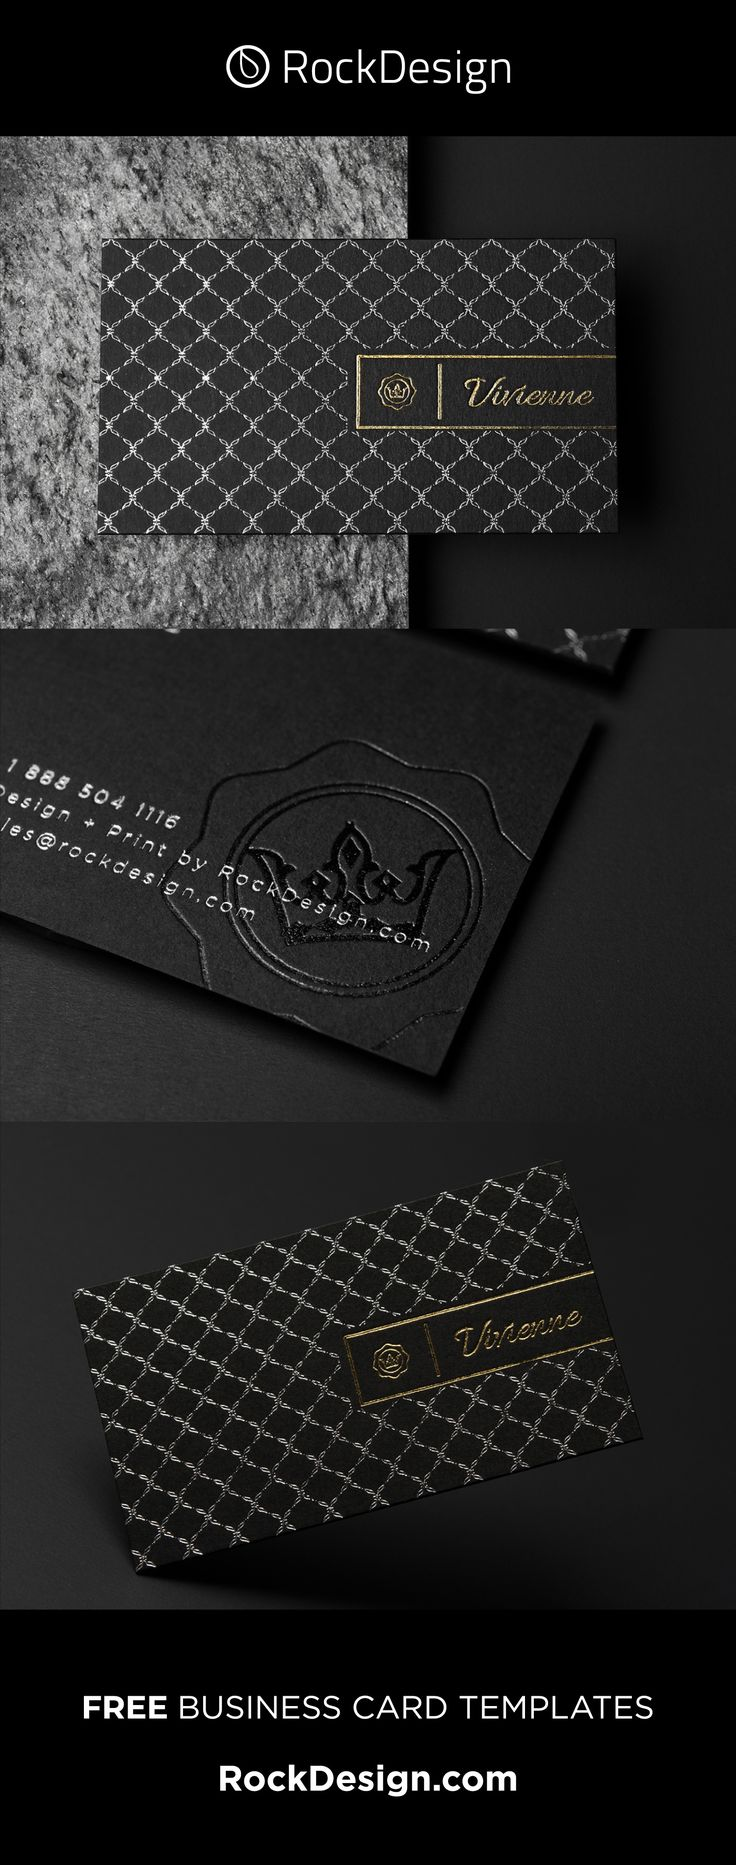 LUXURY PATTERN REAL ESTATE TEMPLATE BLACK DUPLEX BUSINESS CARD – VIVIENNE